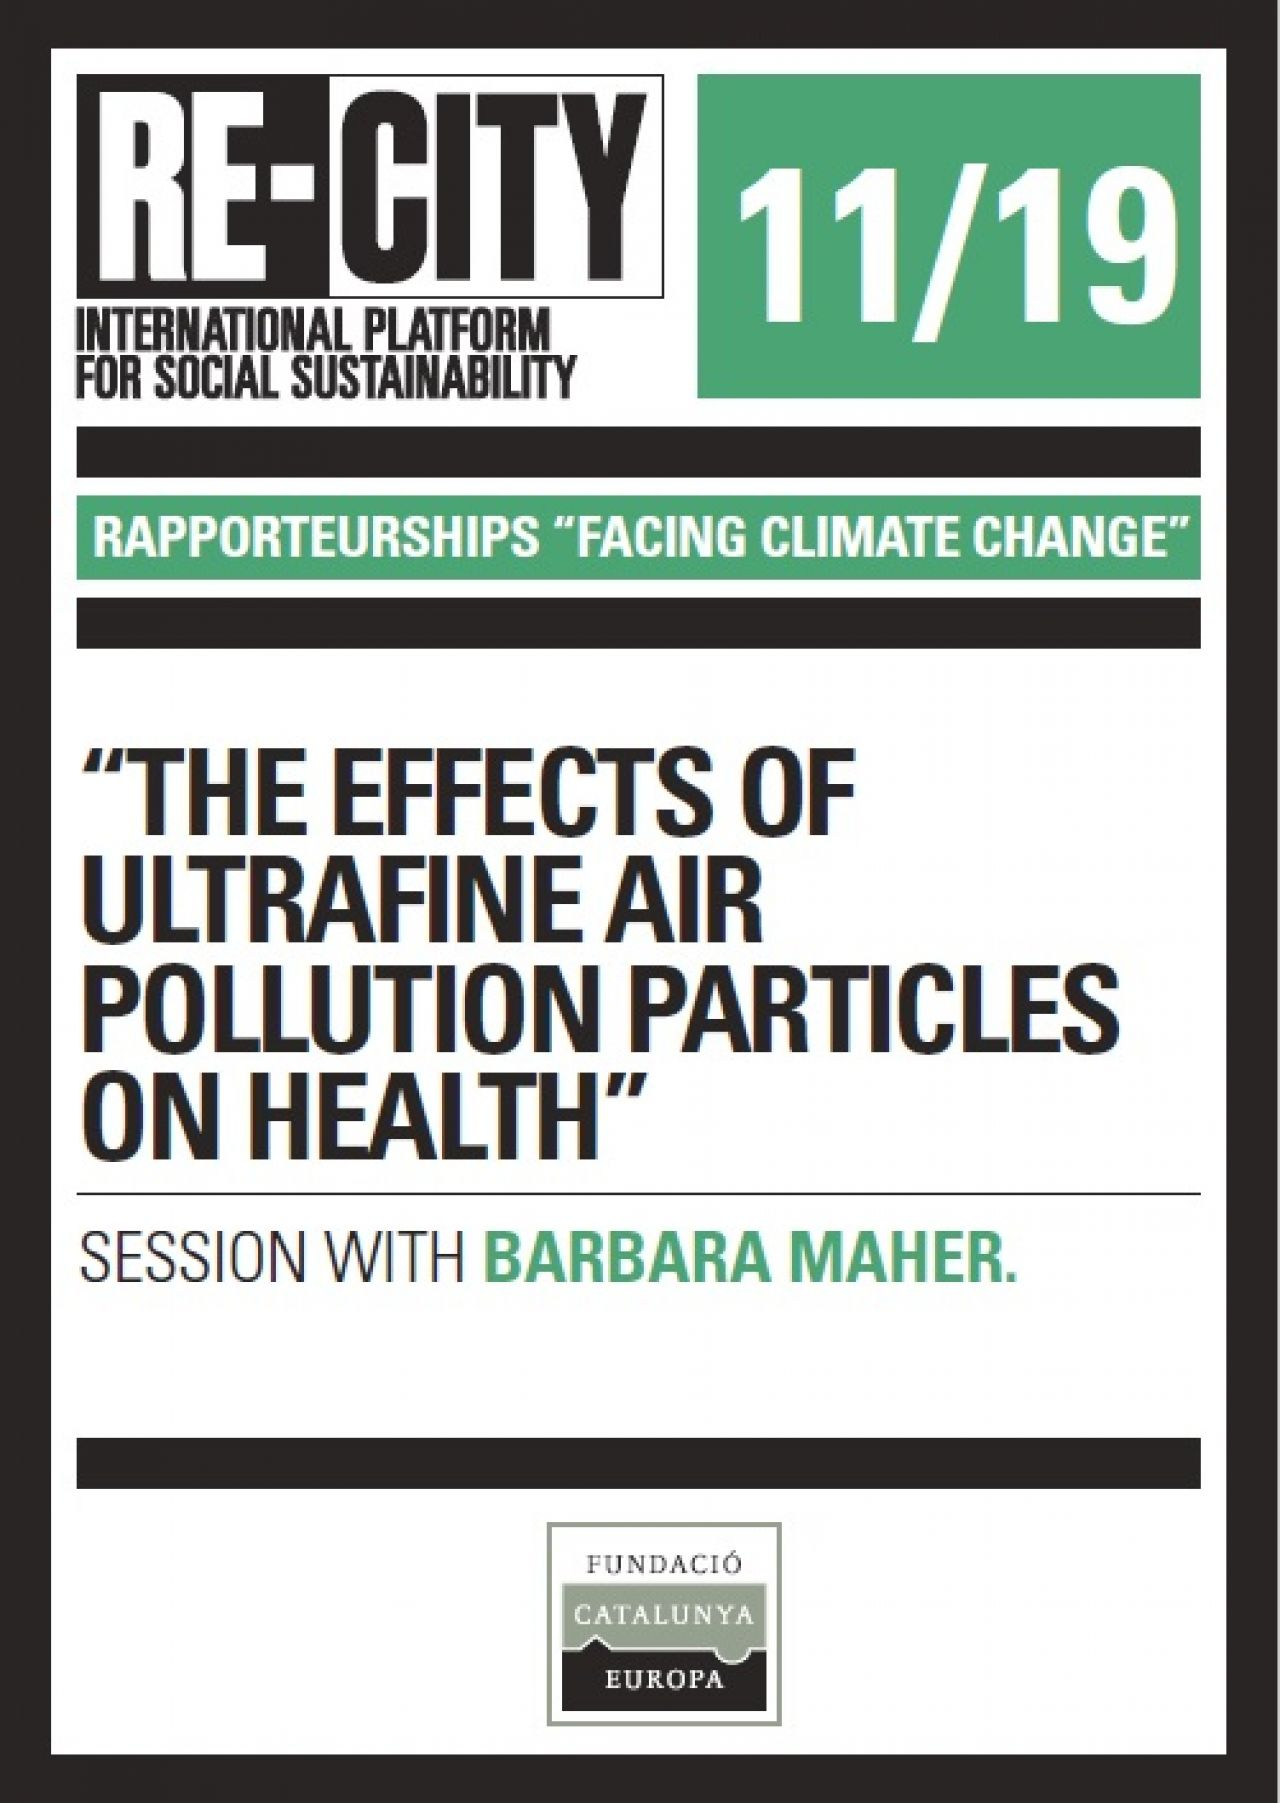 The effects of ultrafine air pollution particles on health. Barbara Maher (eng)